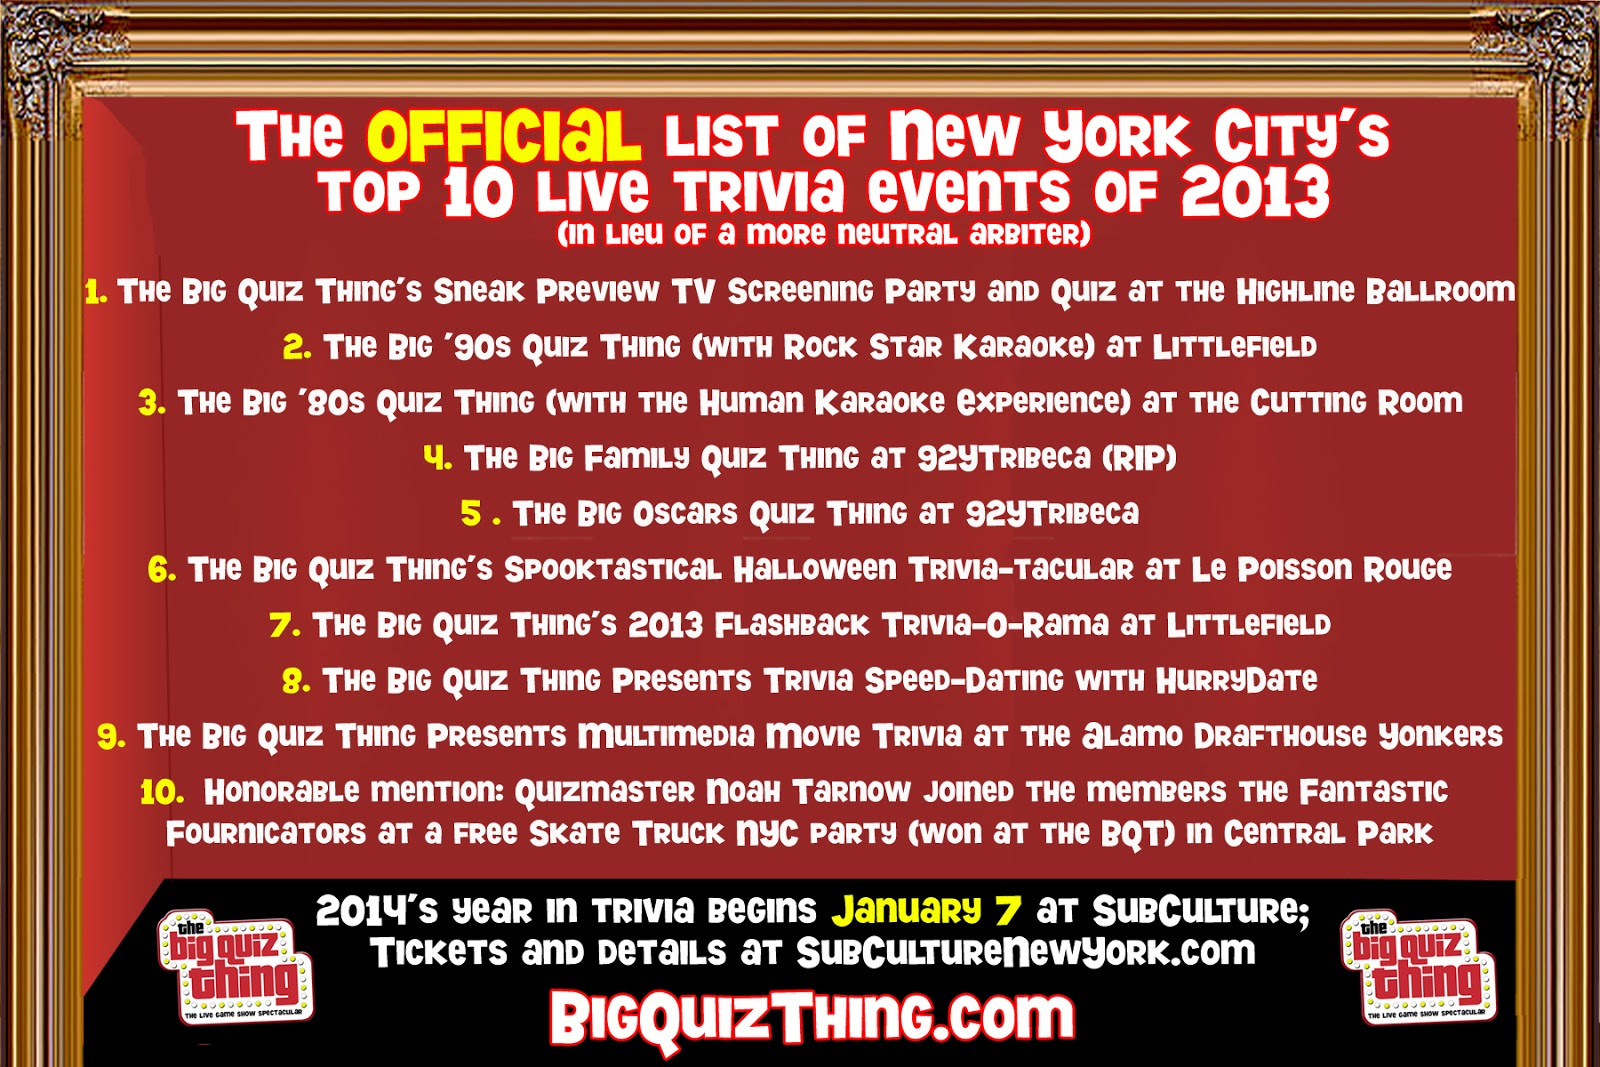 The Big Quiz Thing: NYC quiz preview: Tuesday, Jan 7